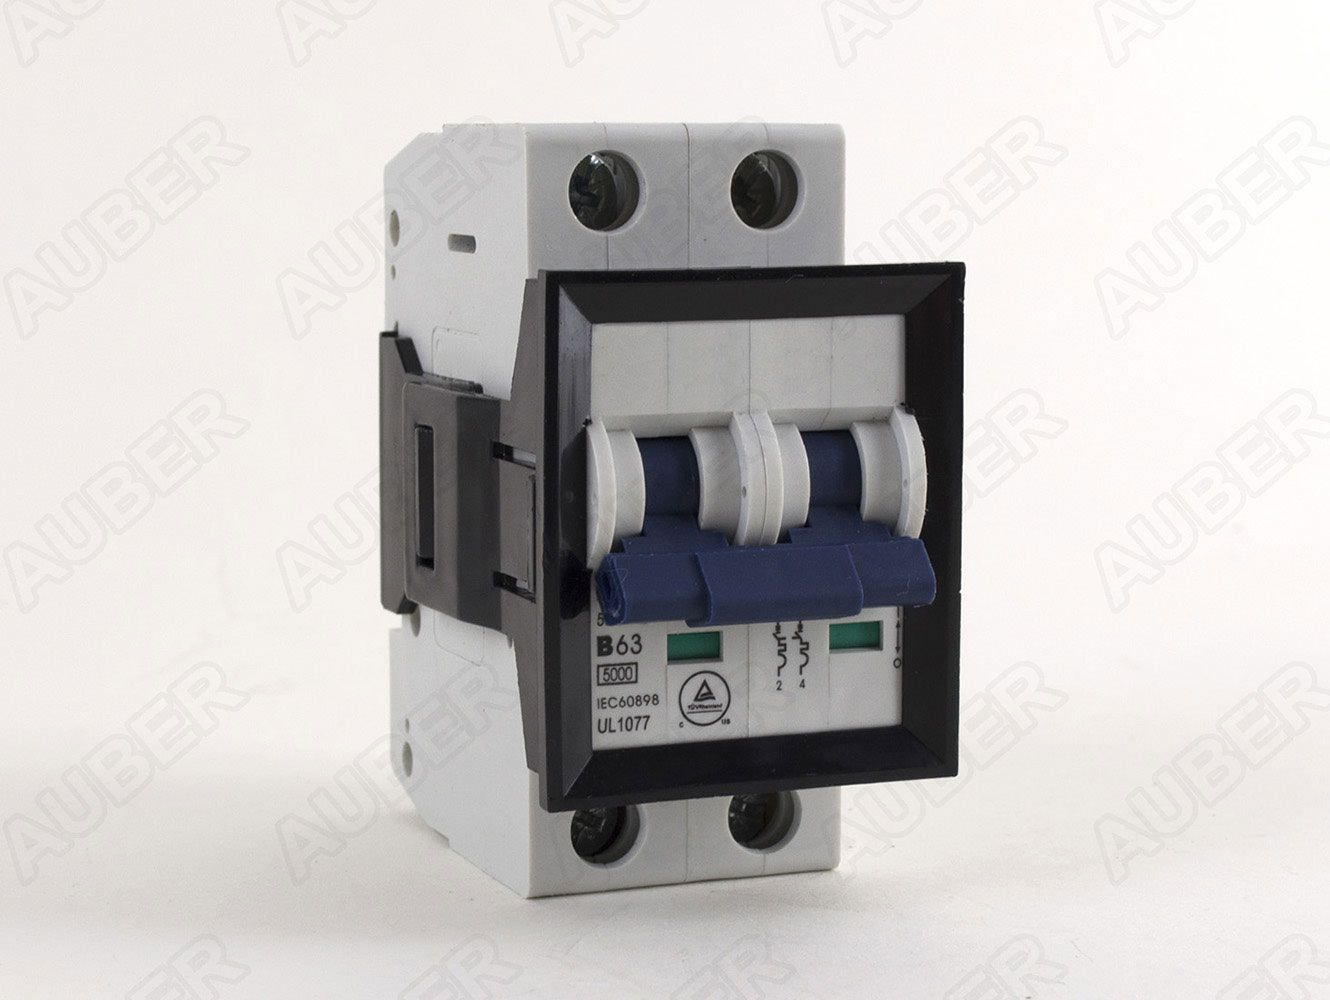 MCB_PM leviton 125 250v 30a nema l14 30p locking flanged inlet [l14 30p f leviton 30a 125 250v plug wiring diagram at gsmx.co